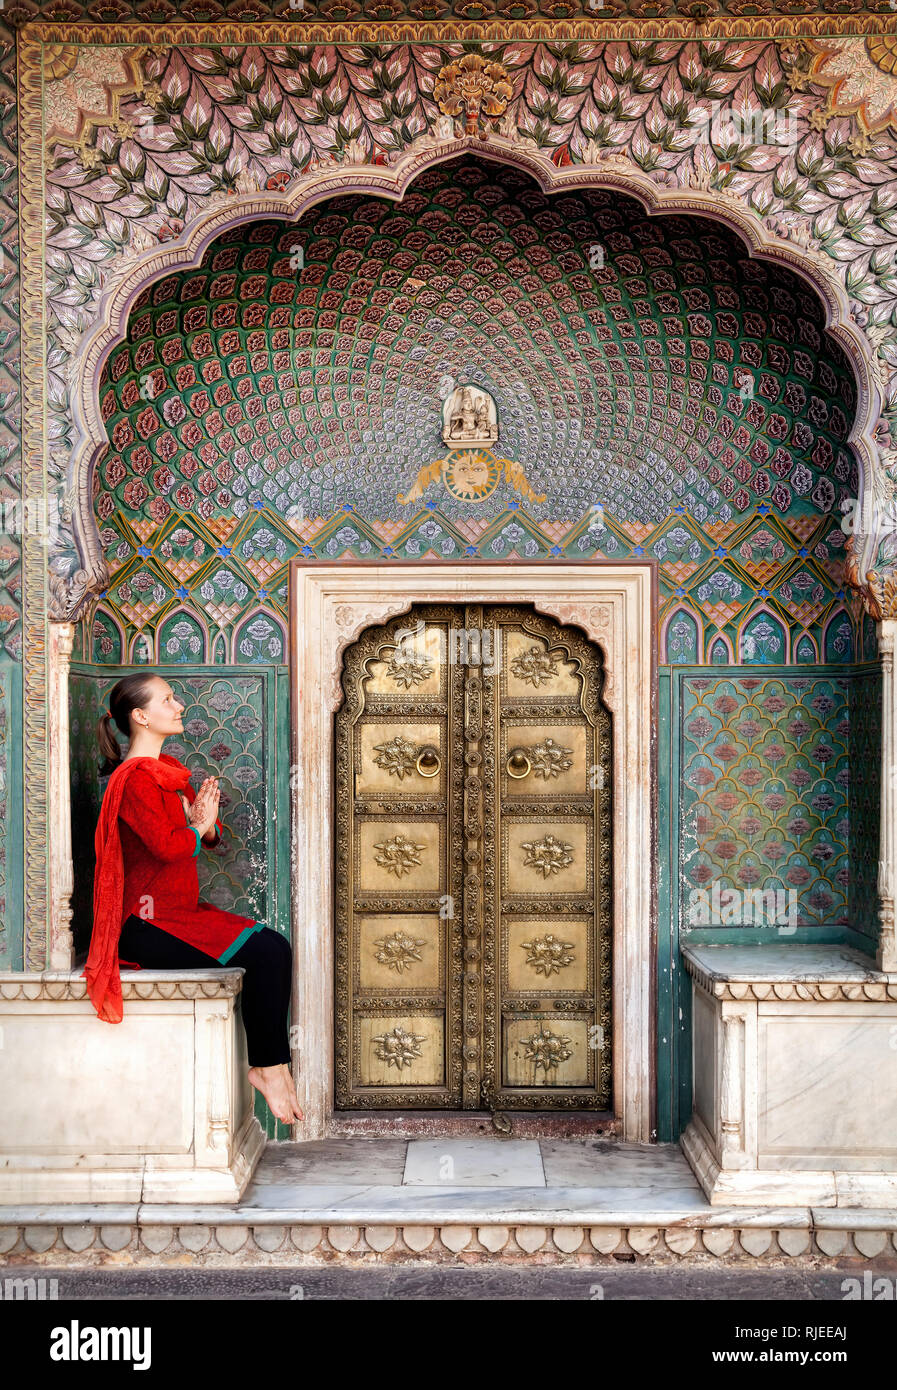 Woman in red scarf sitting near Lotus gate in City Palace of Jaipur, Rajasthan, India - Stock Image